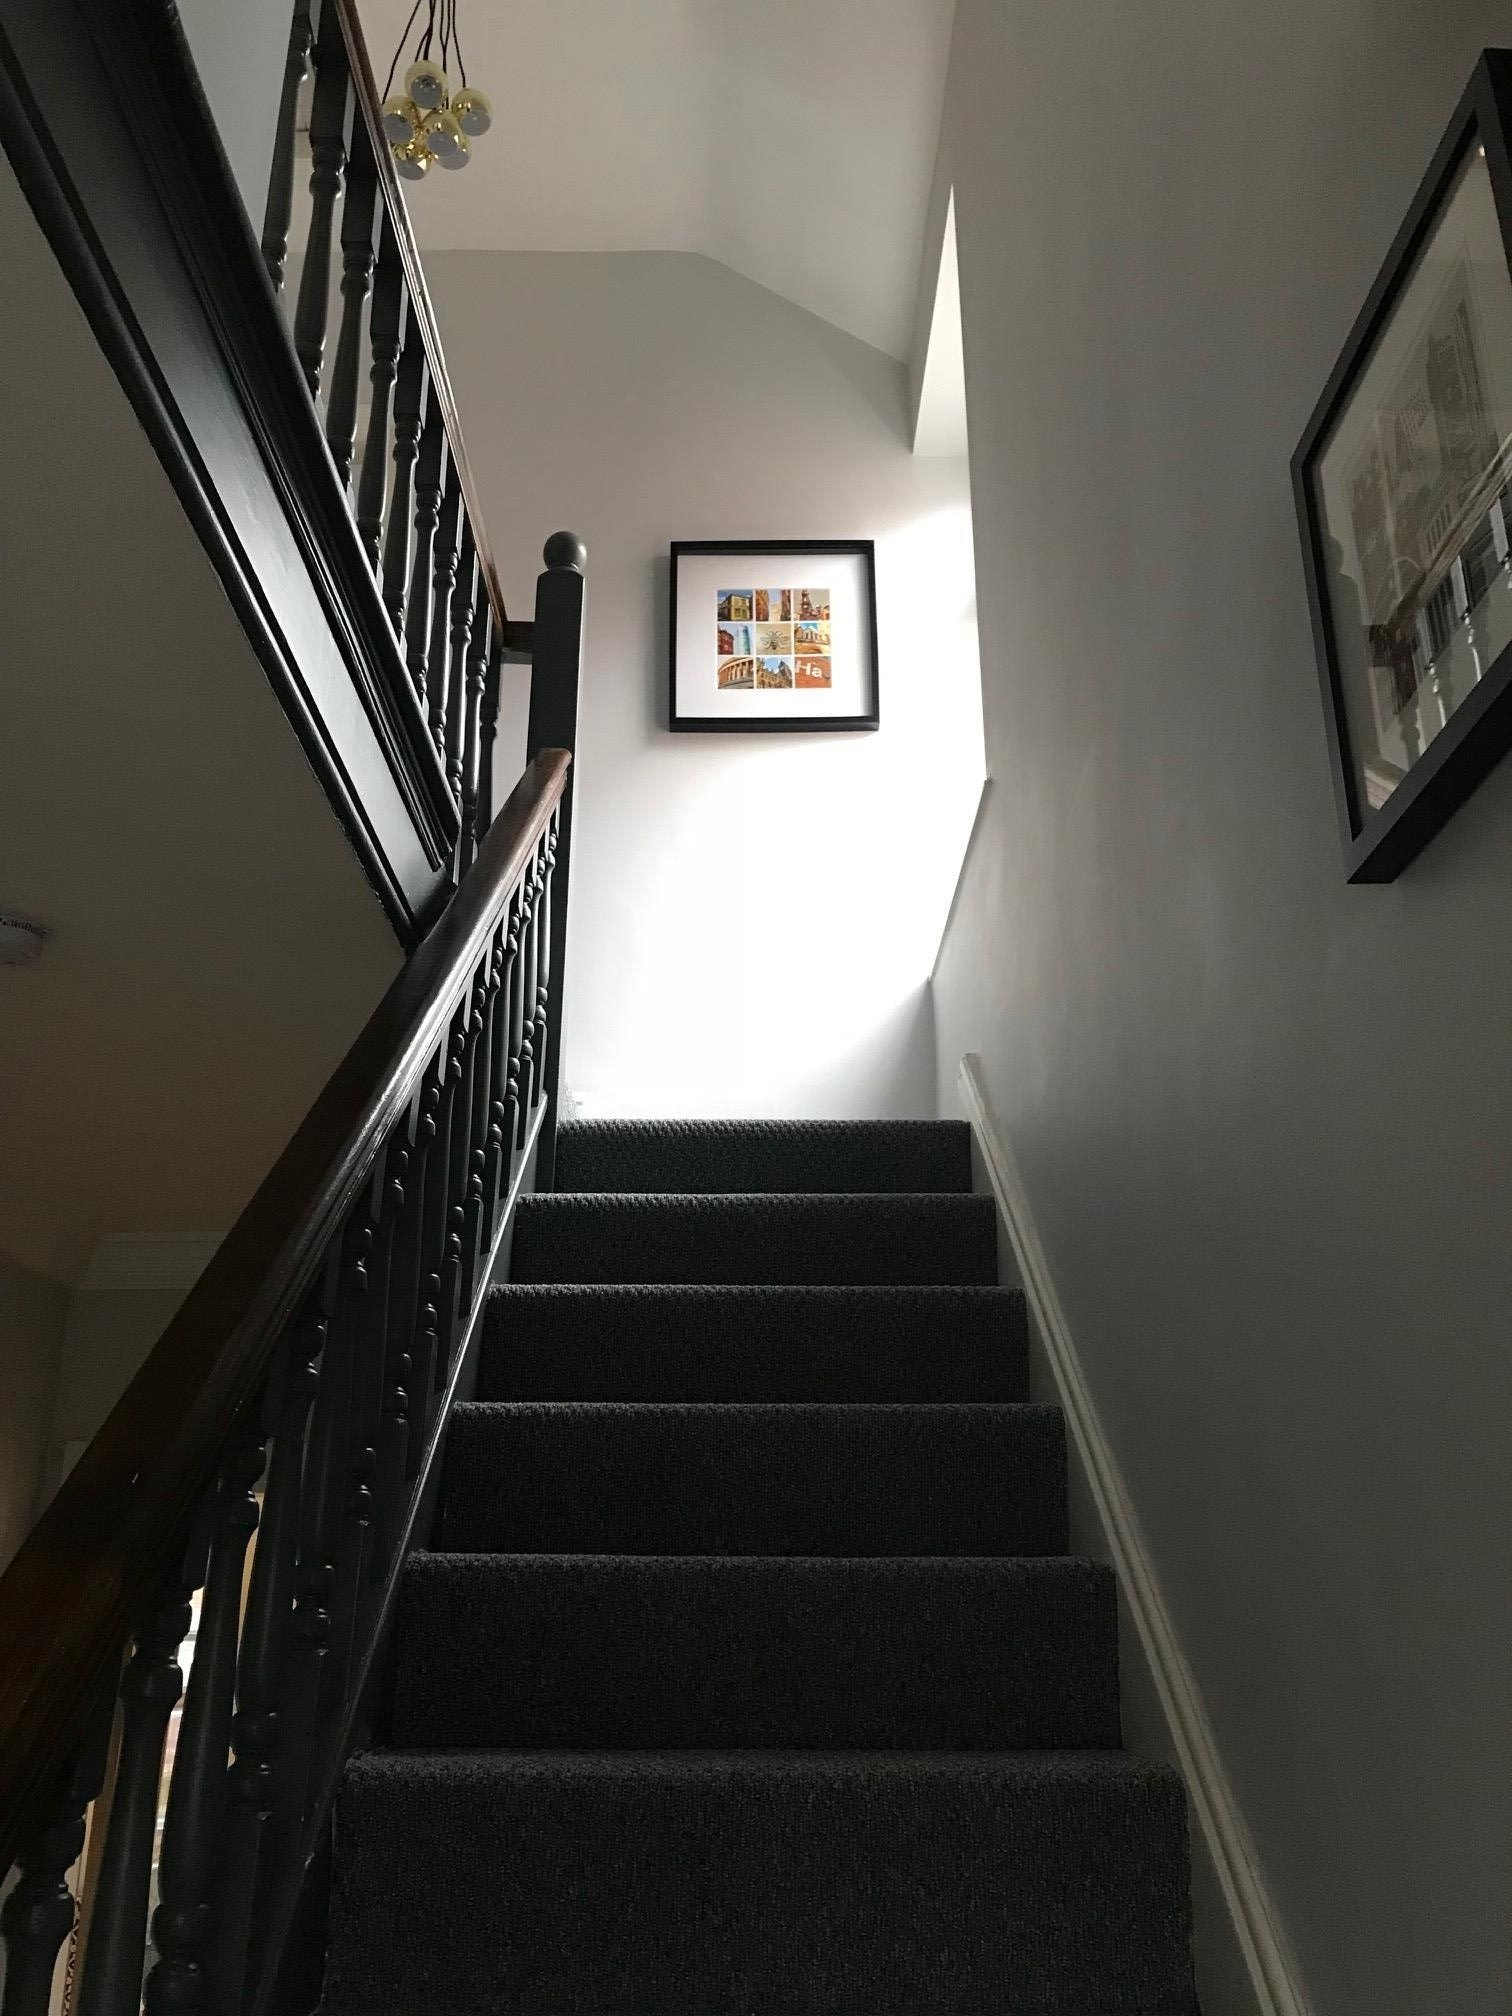 View up the stairs onto the landing.